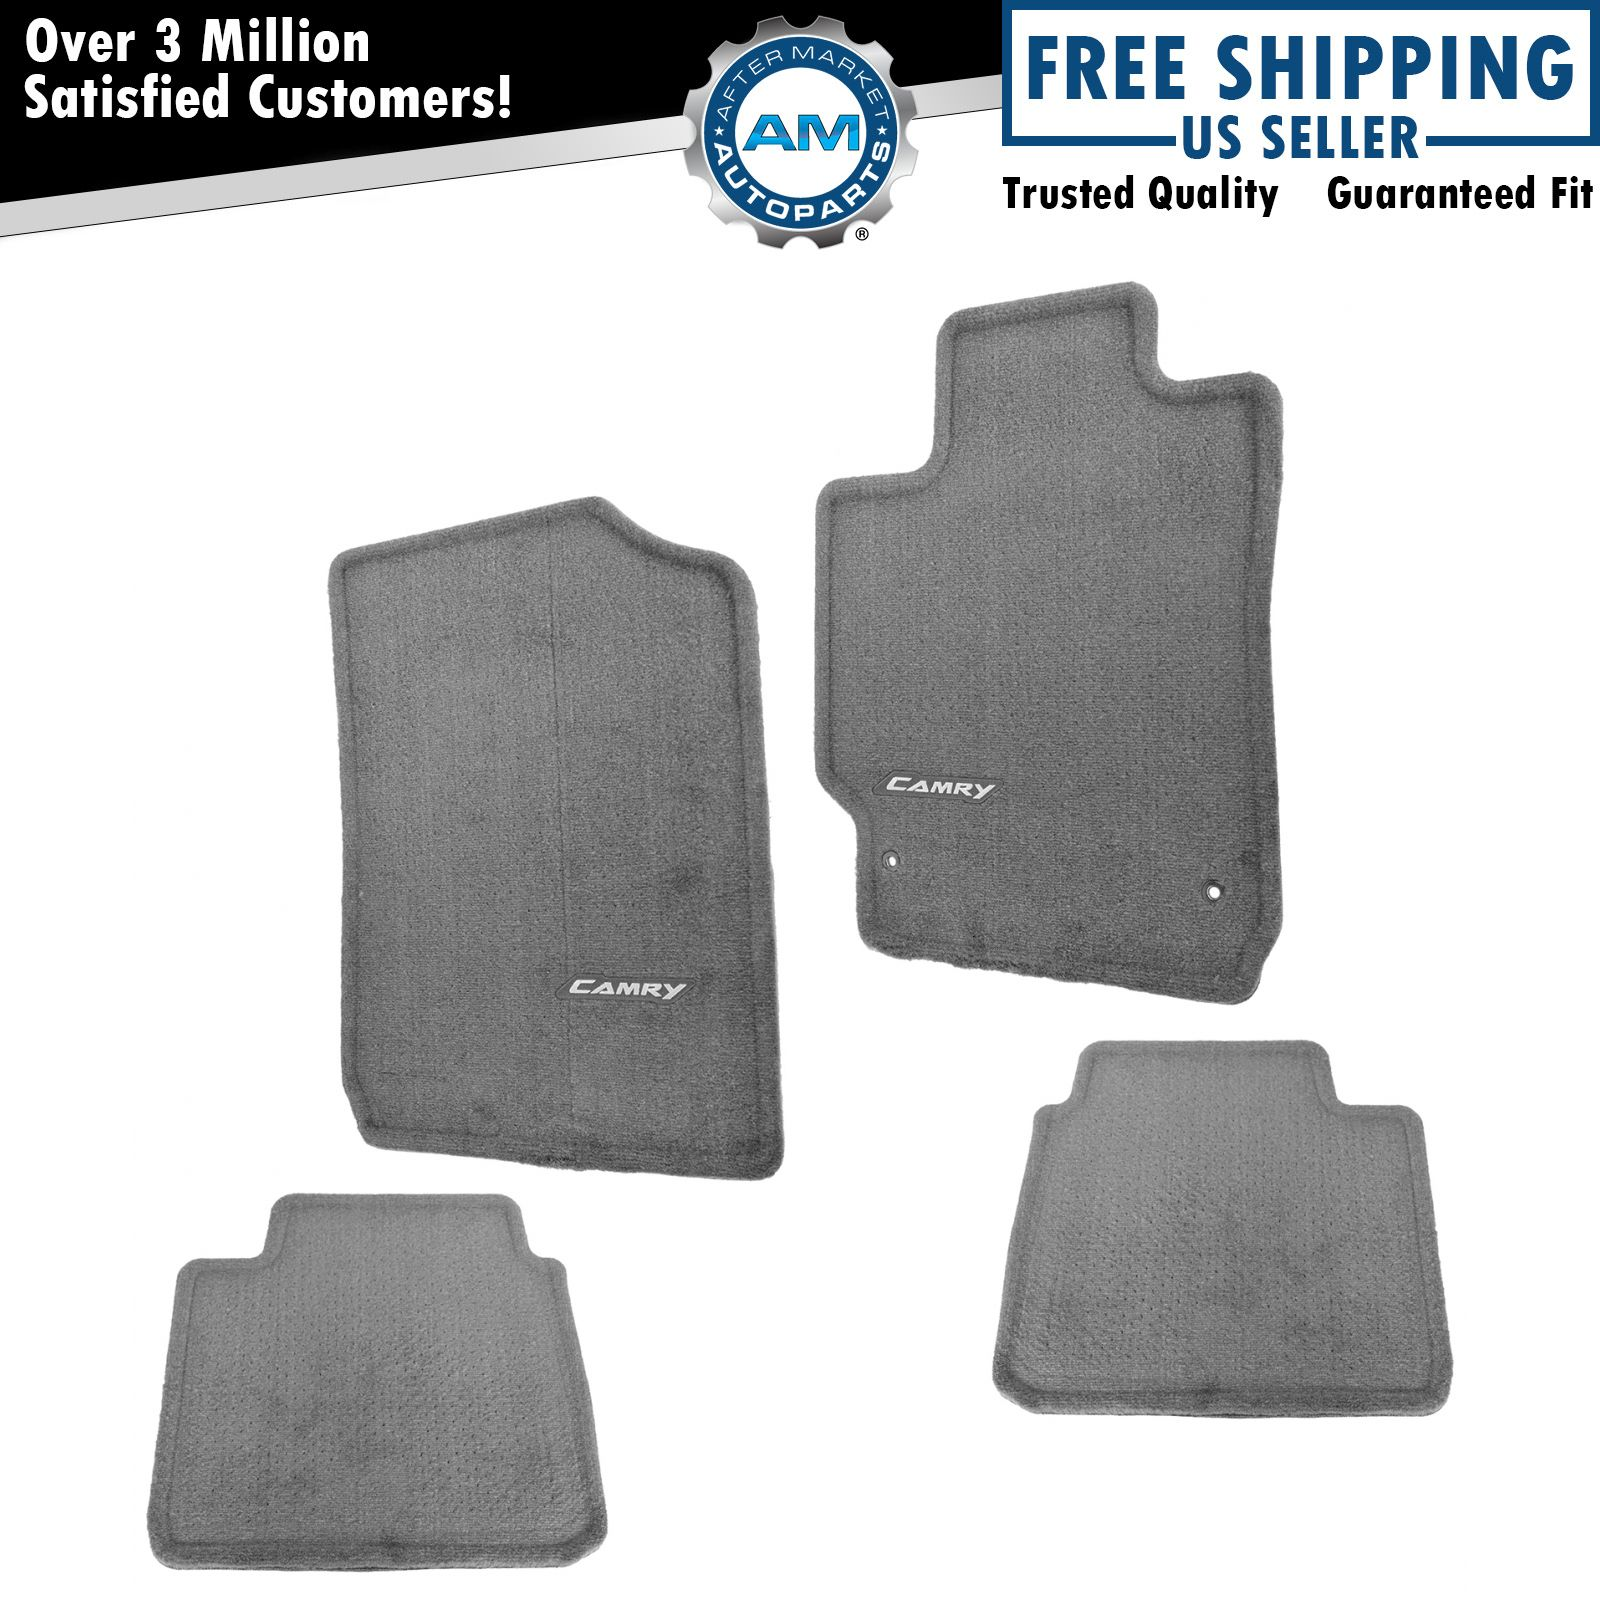 Camry 2009 toyota camry floor mats 2009 toyota camry at for 2009 toyota camry floor mats